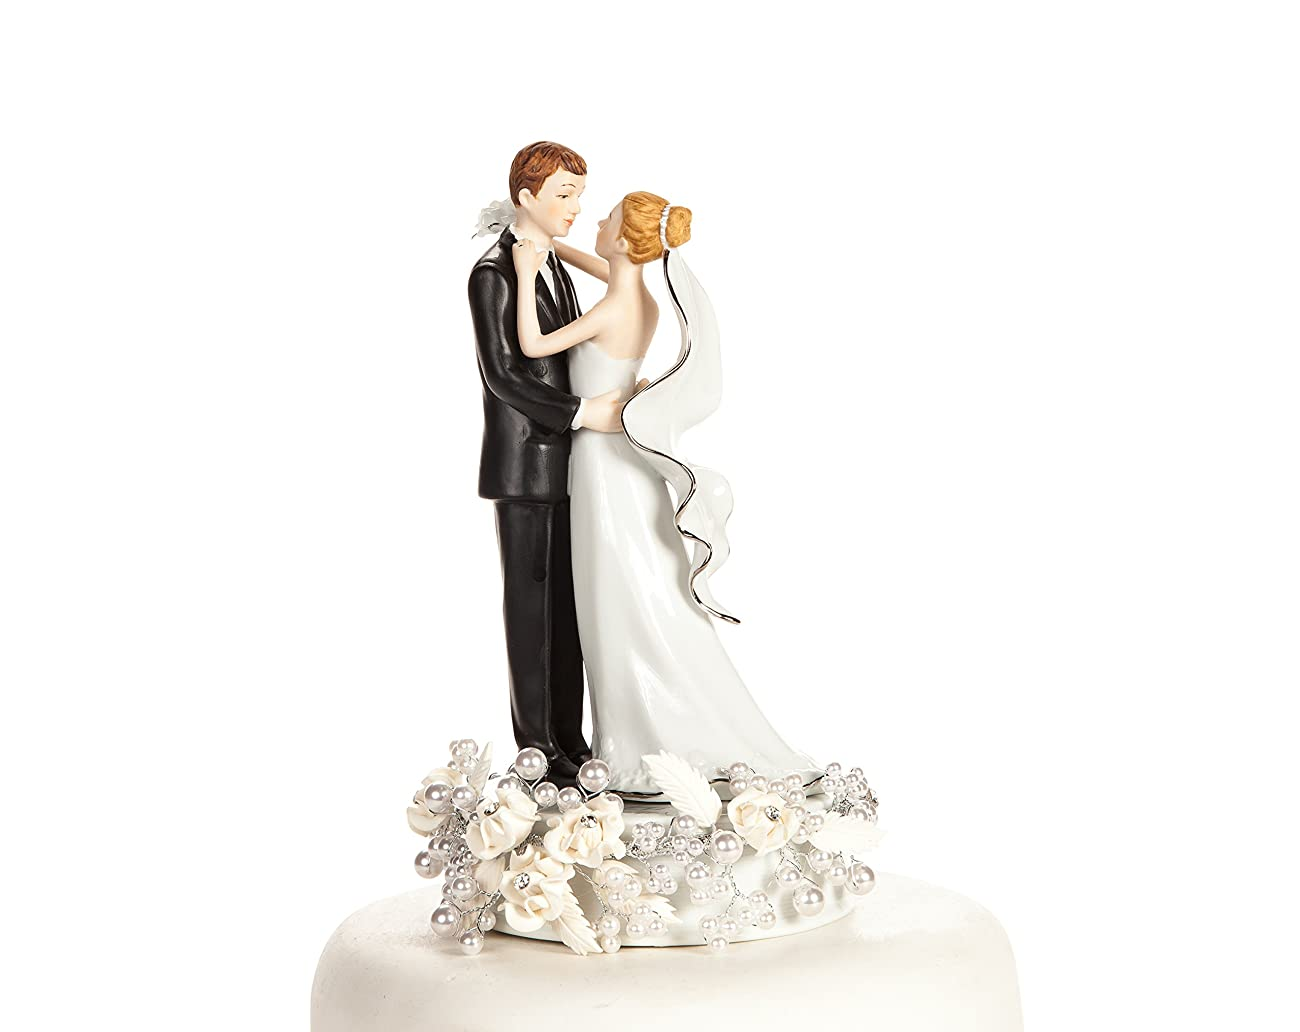 White and Silver Vintage Rose Pearl Wedding Cake Topper: Base Color: White with Silver Wiring 4